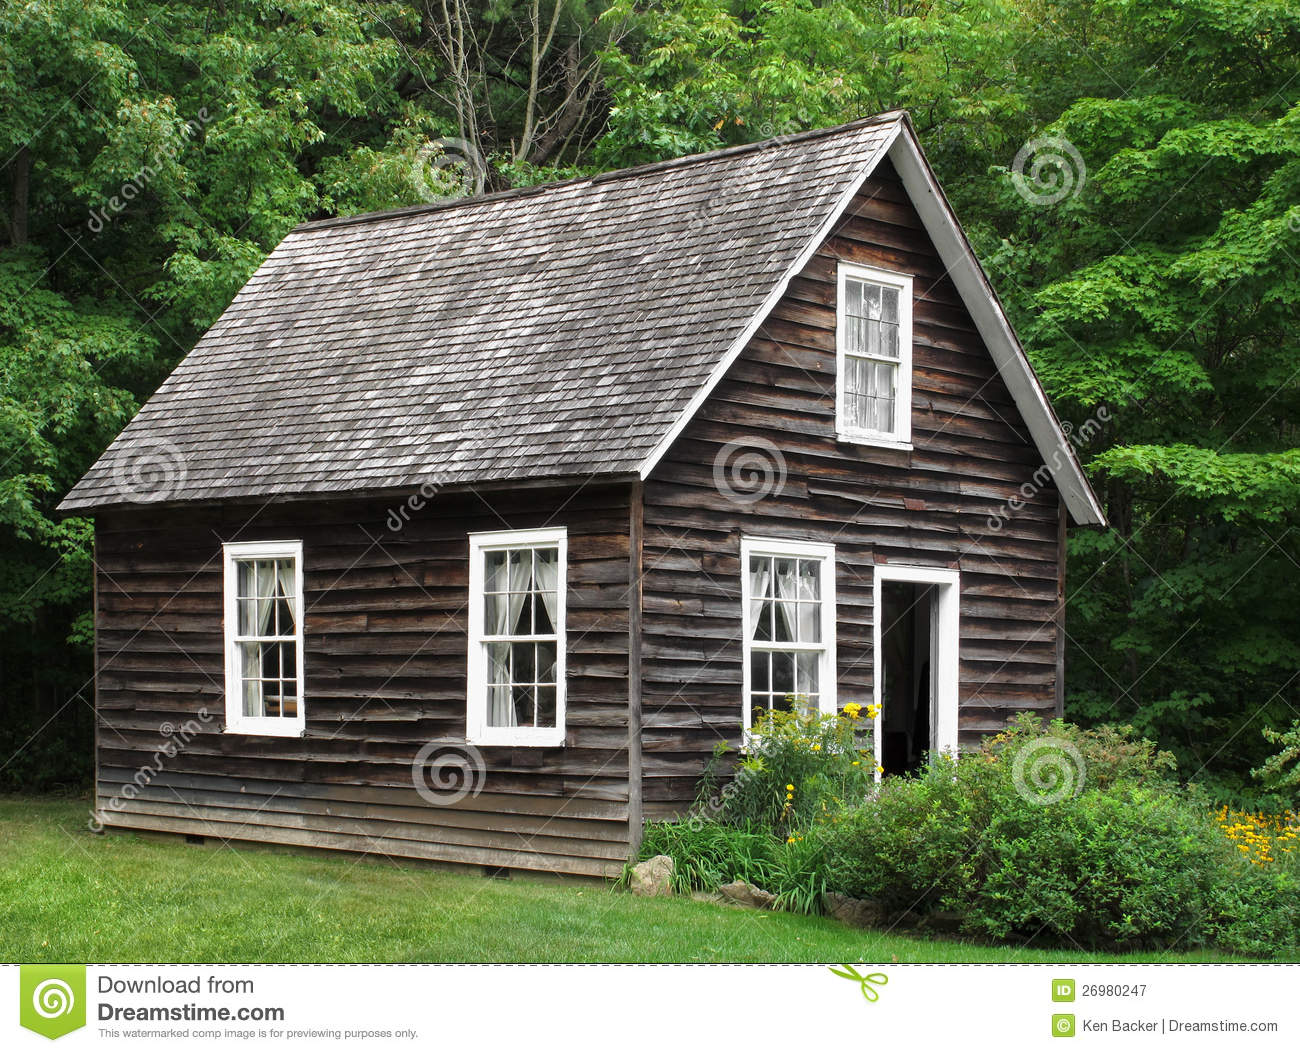 Small rustic wood house in trees royalty free stock photography image 26980247 - Small wood homes ...